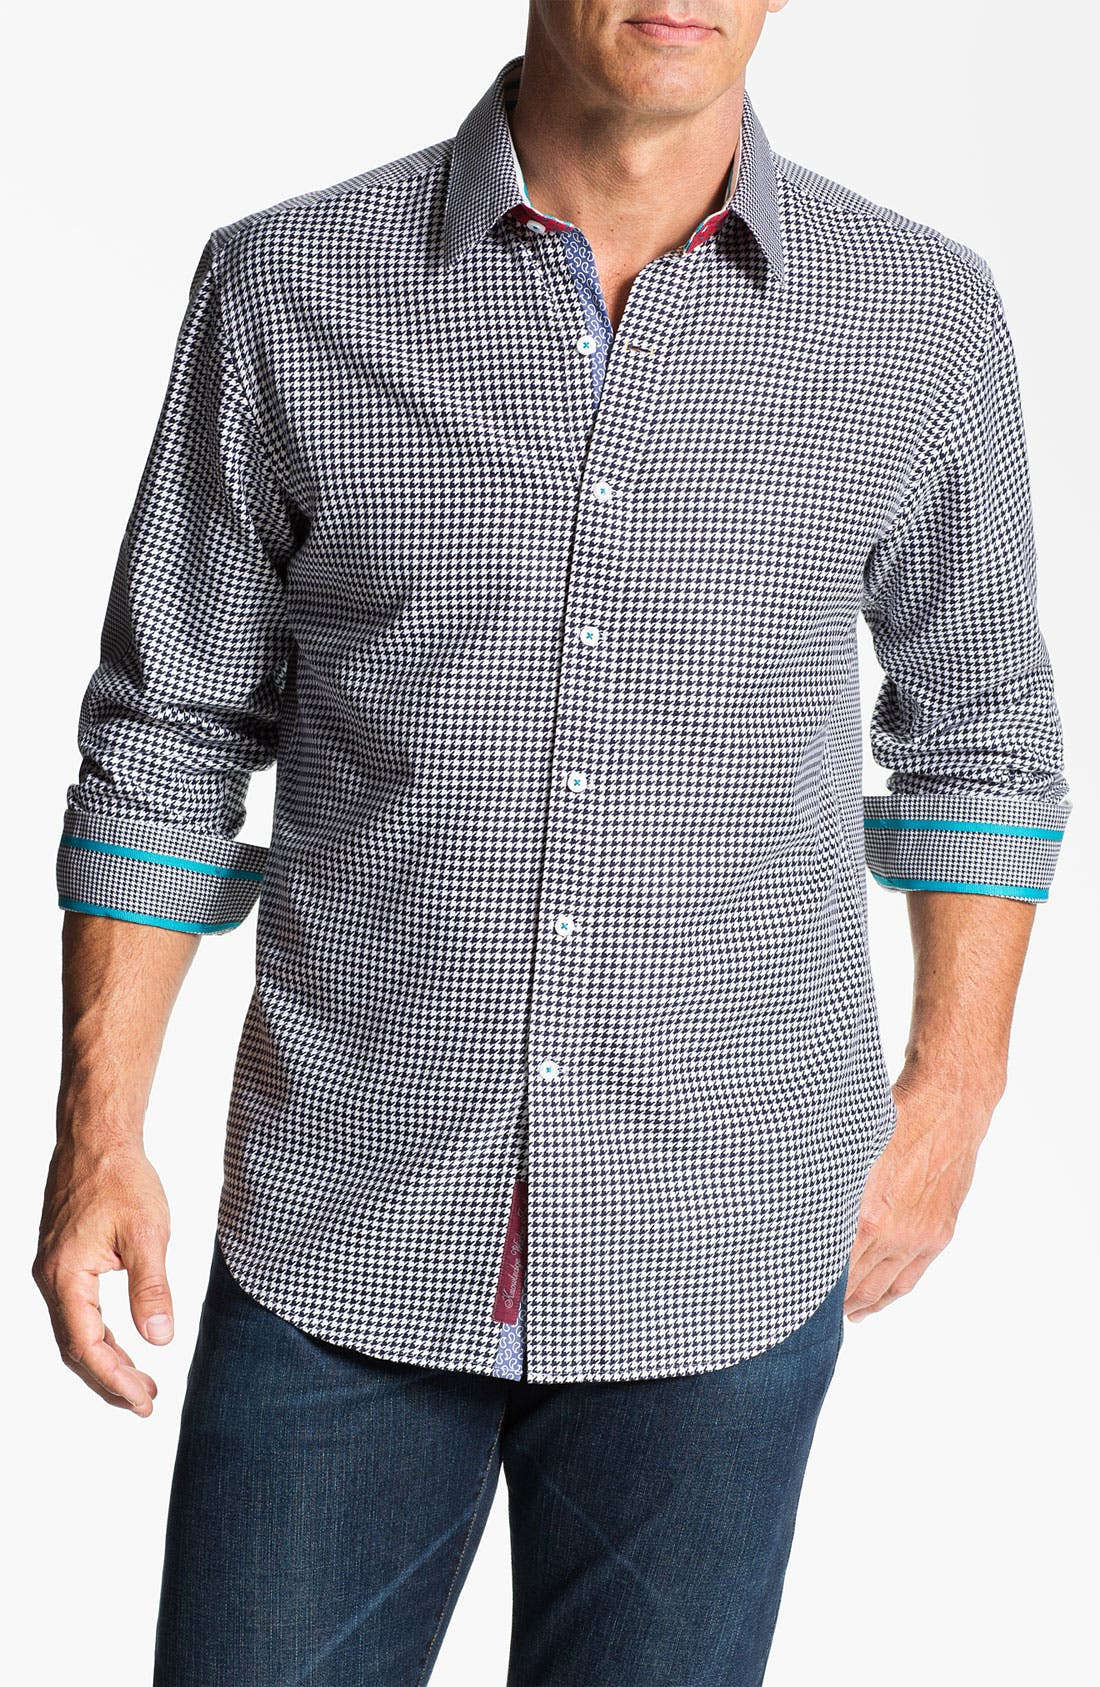 Main Image - Robert Graham 'Puckle' Sport Shirt